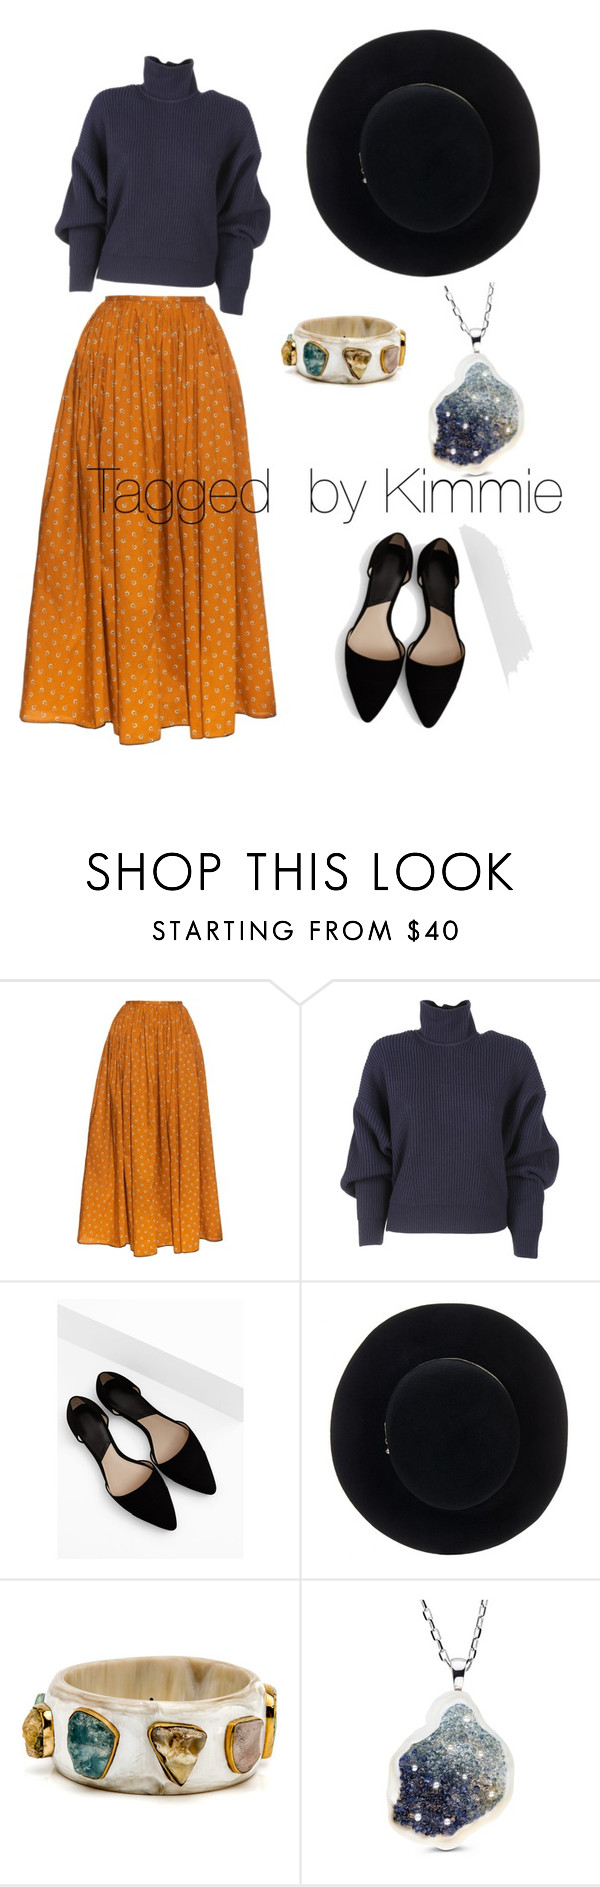 """""""How to wear a long skirt"""" by taggedbykimmie15 on Polyvore featuring Thierry Colson, Balenciaga, MANGO and Eugenia Kim"""